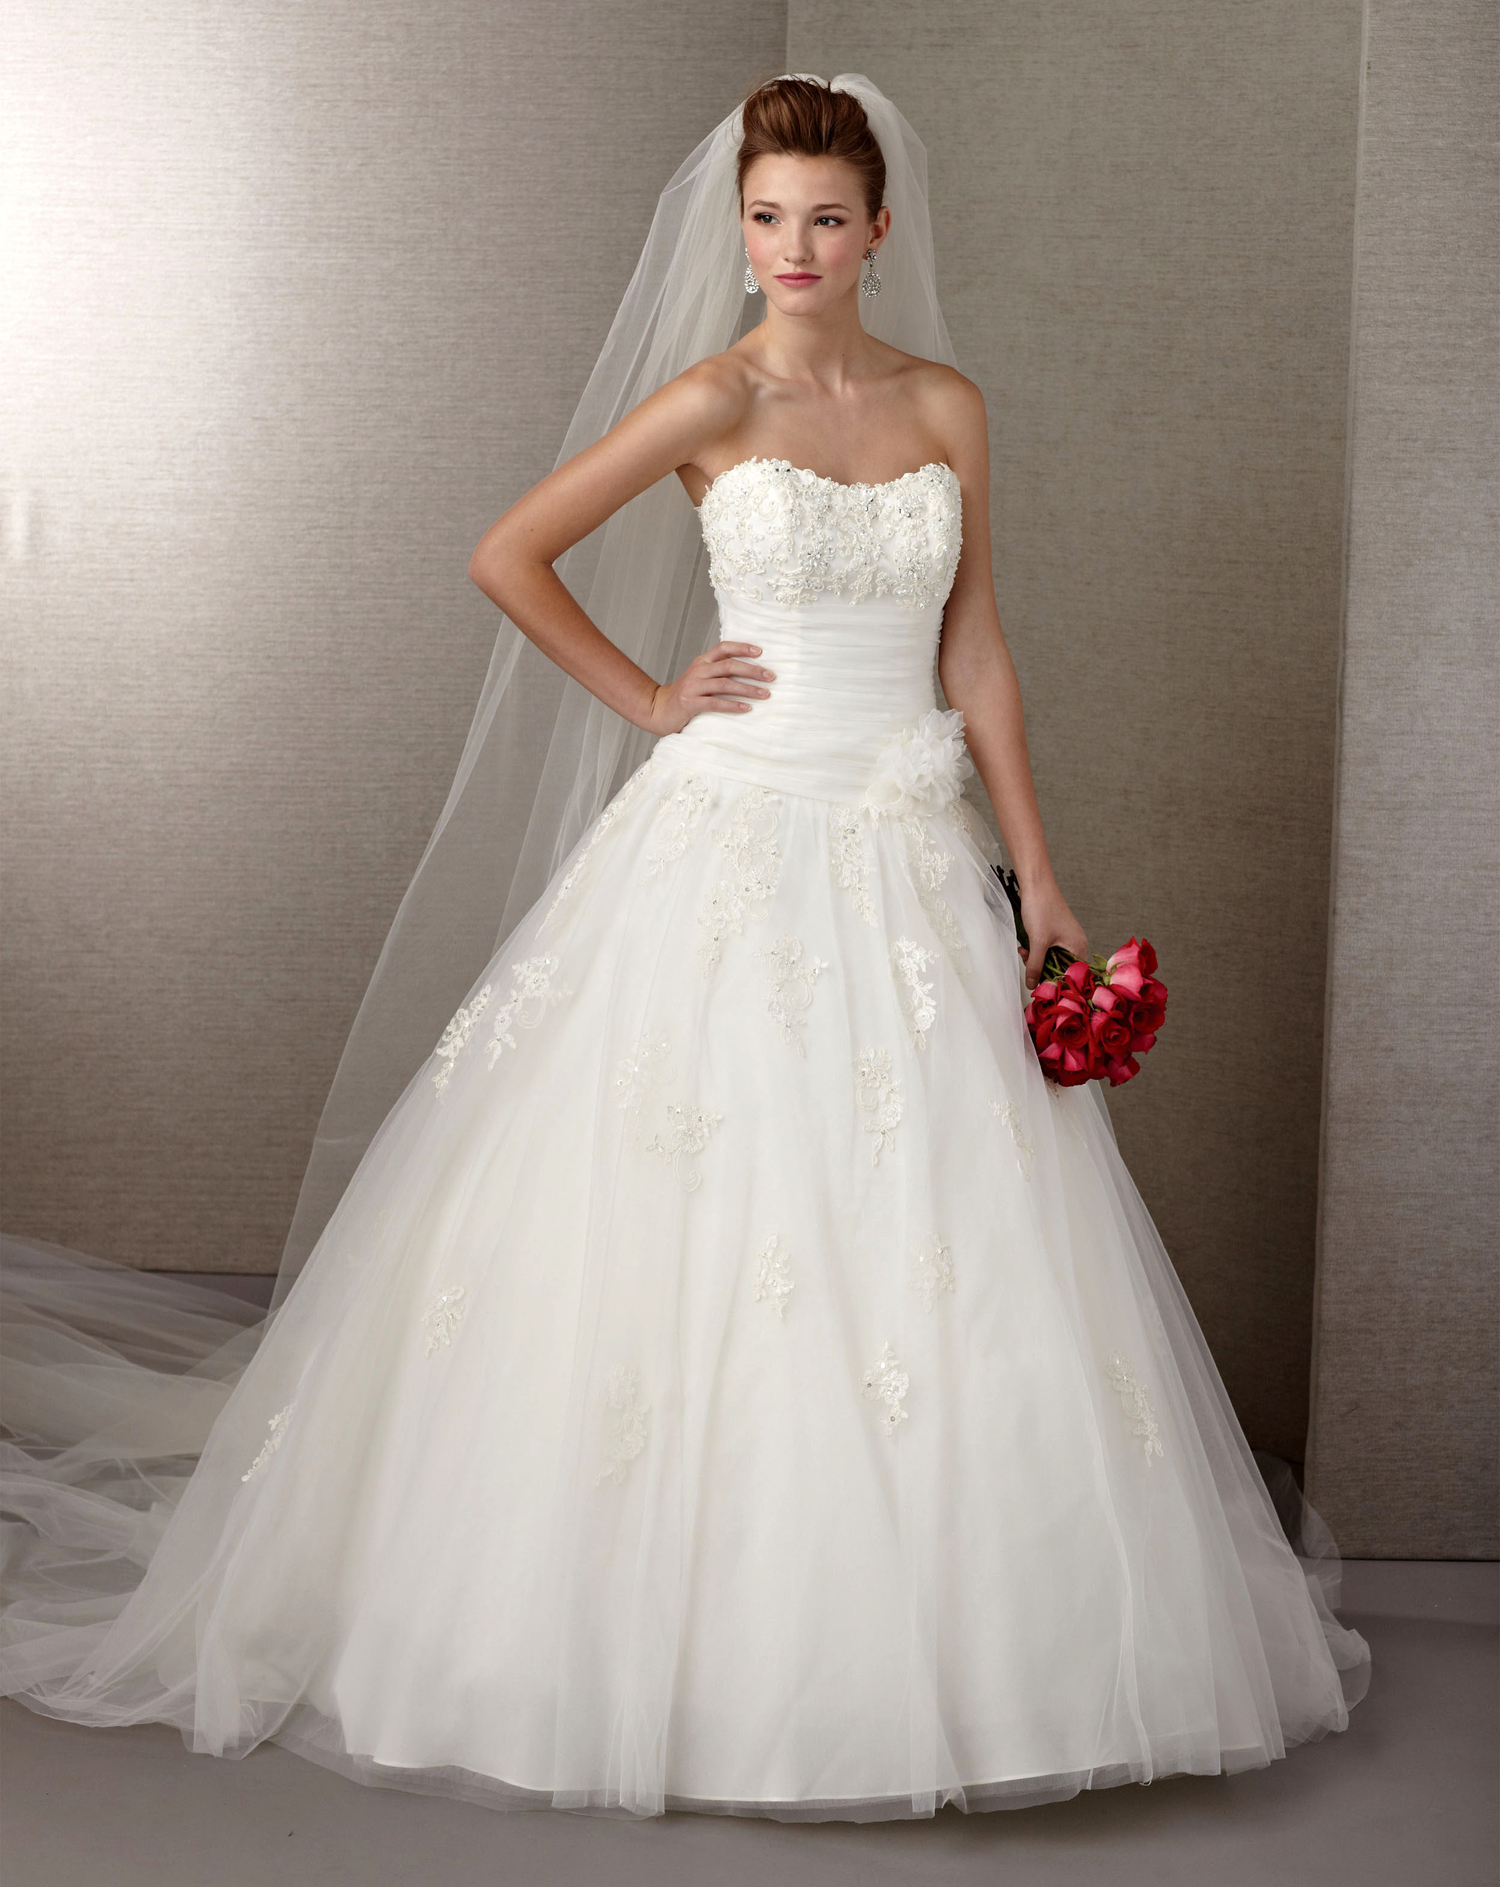 Wedding dress under 100 dollars with long veilcherry marry for Long wedding dresses under 100